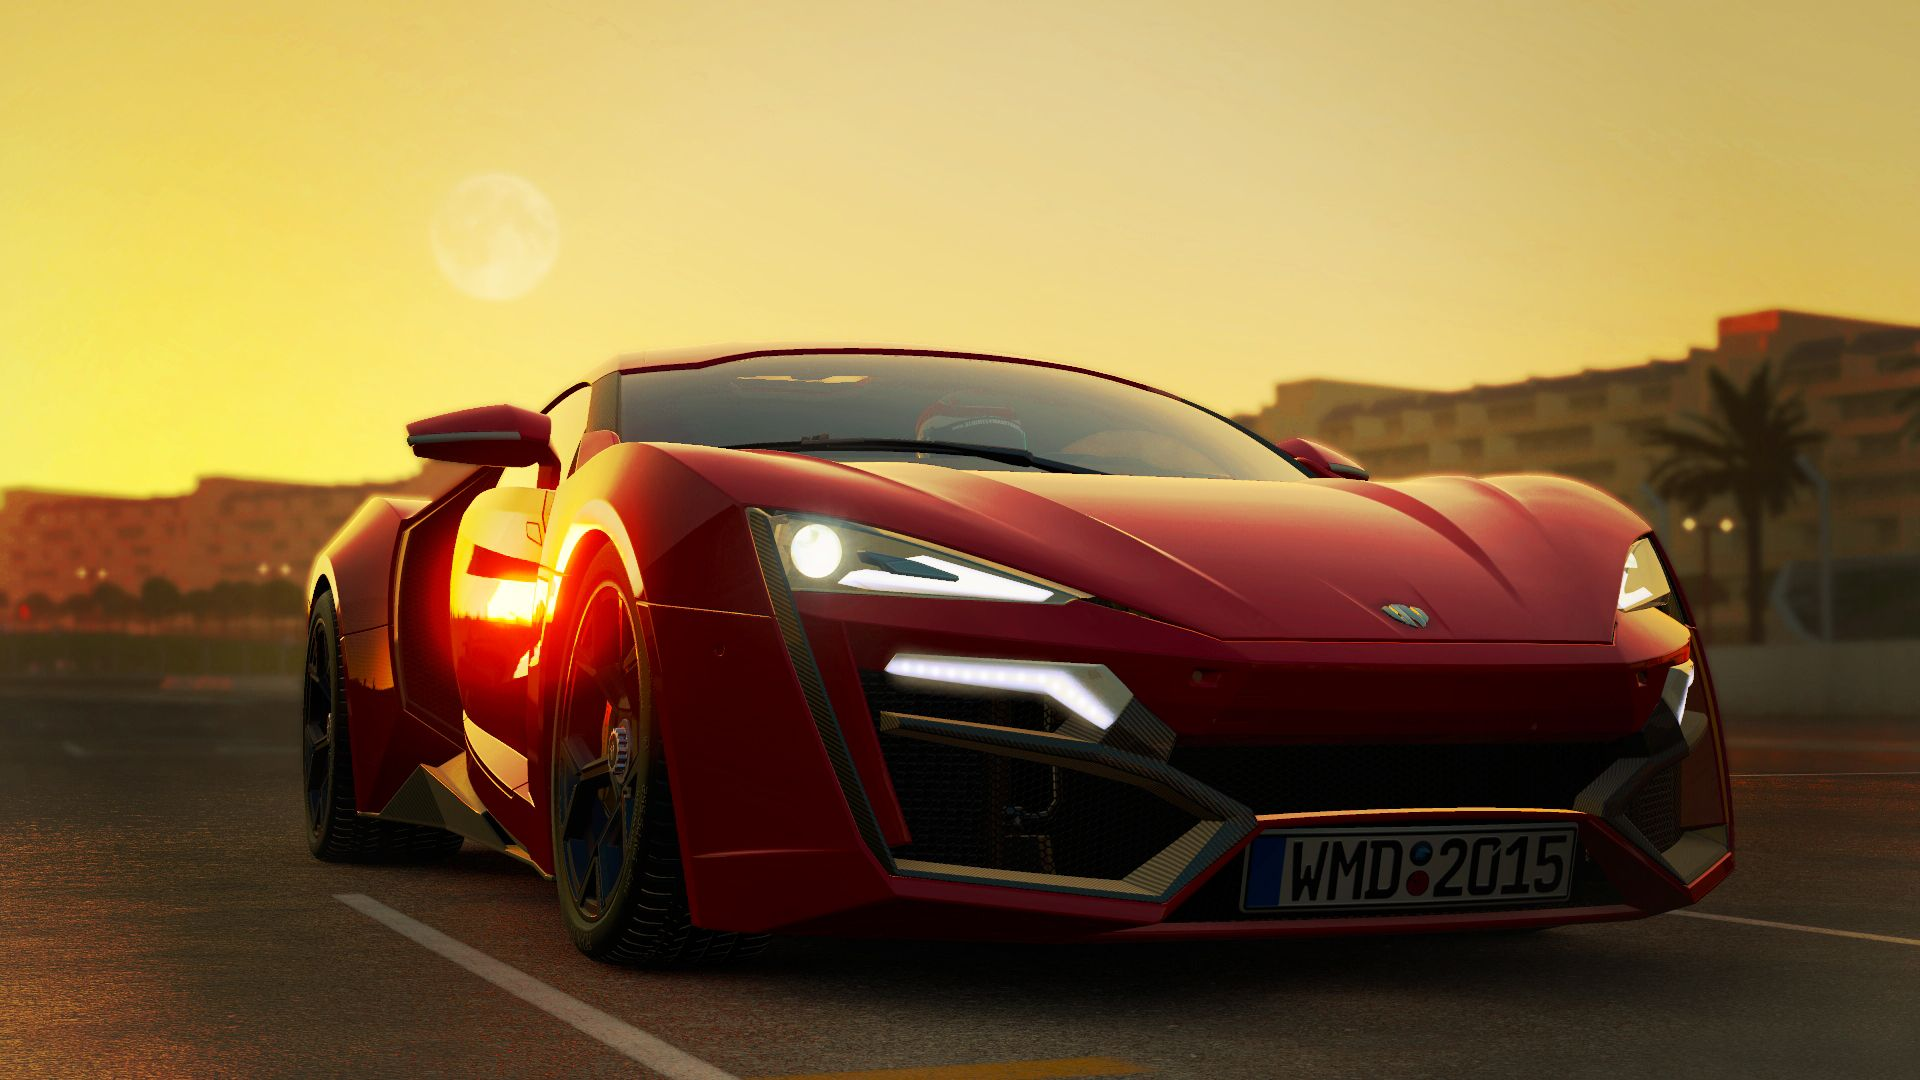 2015 Lykan Hypersport Ff7 Wallpaper 293 Wallpaper Lykan Hypersport Super Cars Vehicles